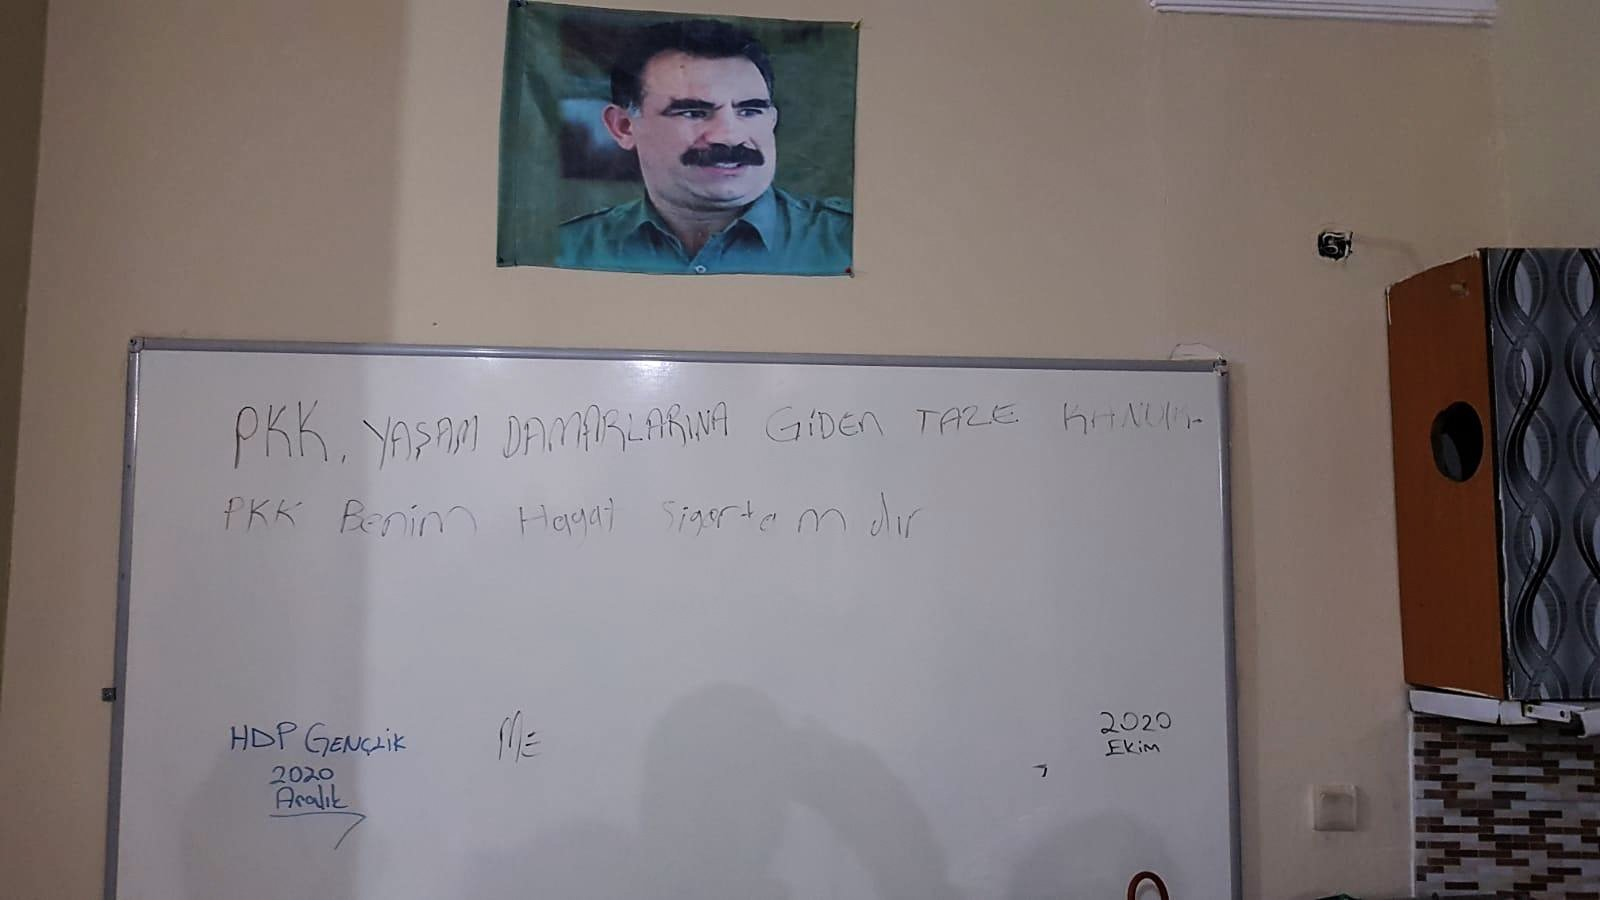 Security forces launched an operation after posters of the jailed PKK leader Abdullah Öcalan and terrorist propaganda material were found at the HDP's Esenyurt headquarters, Istanbul, Jan. 25, 2021. (AA Photo)